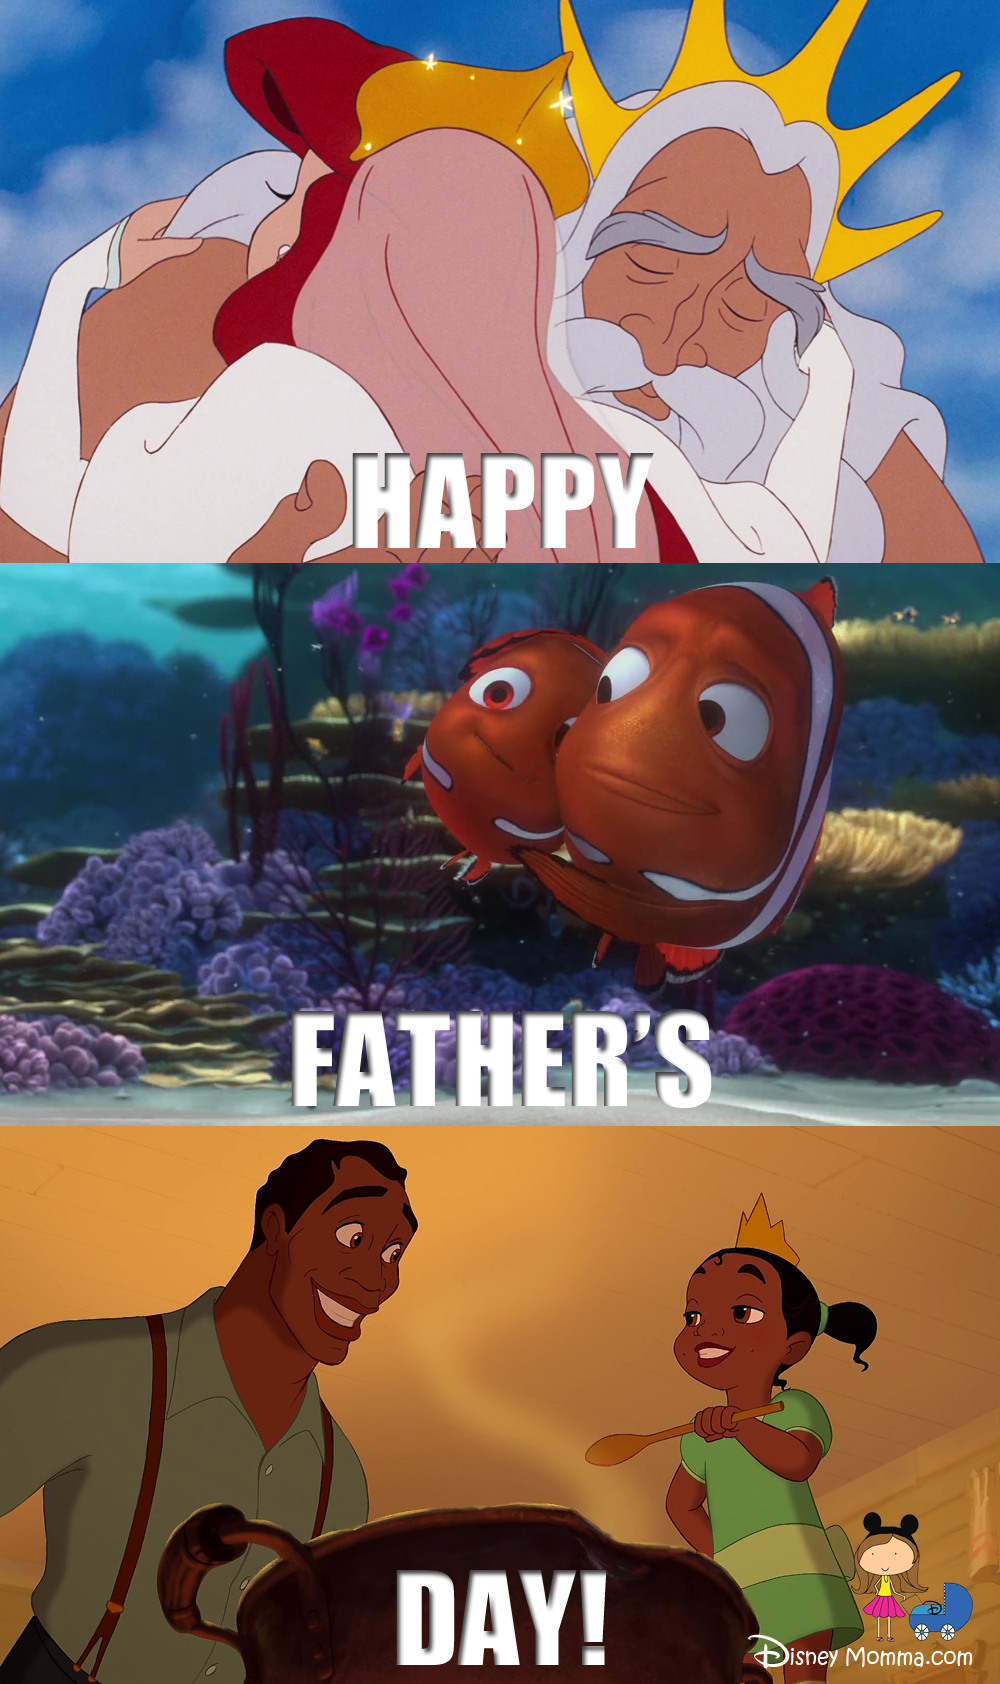 Happy Father's Day, Dads!